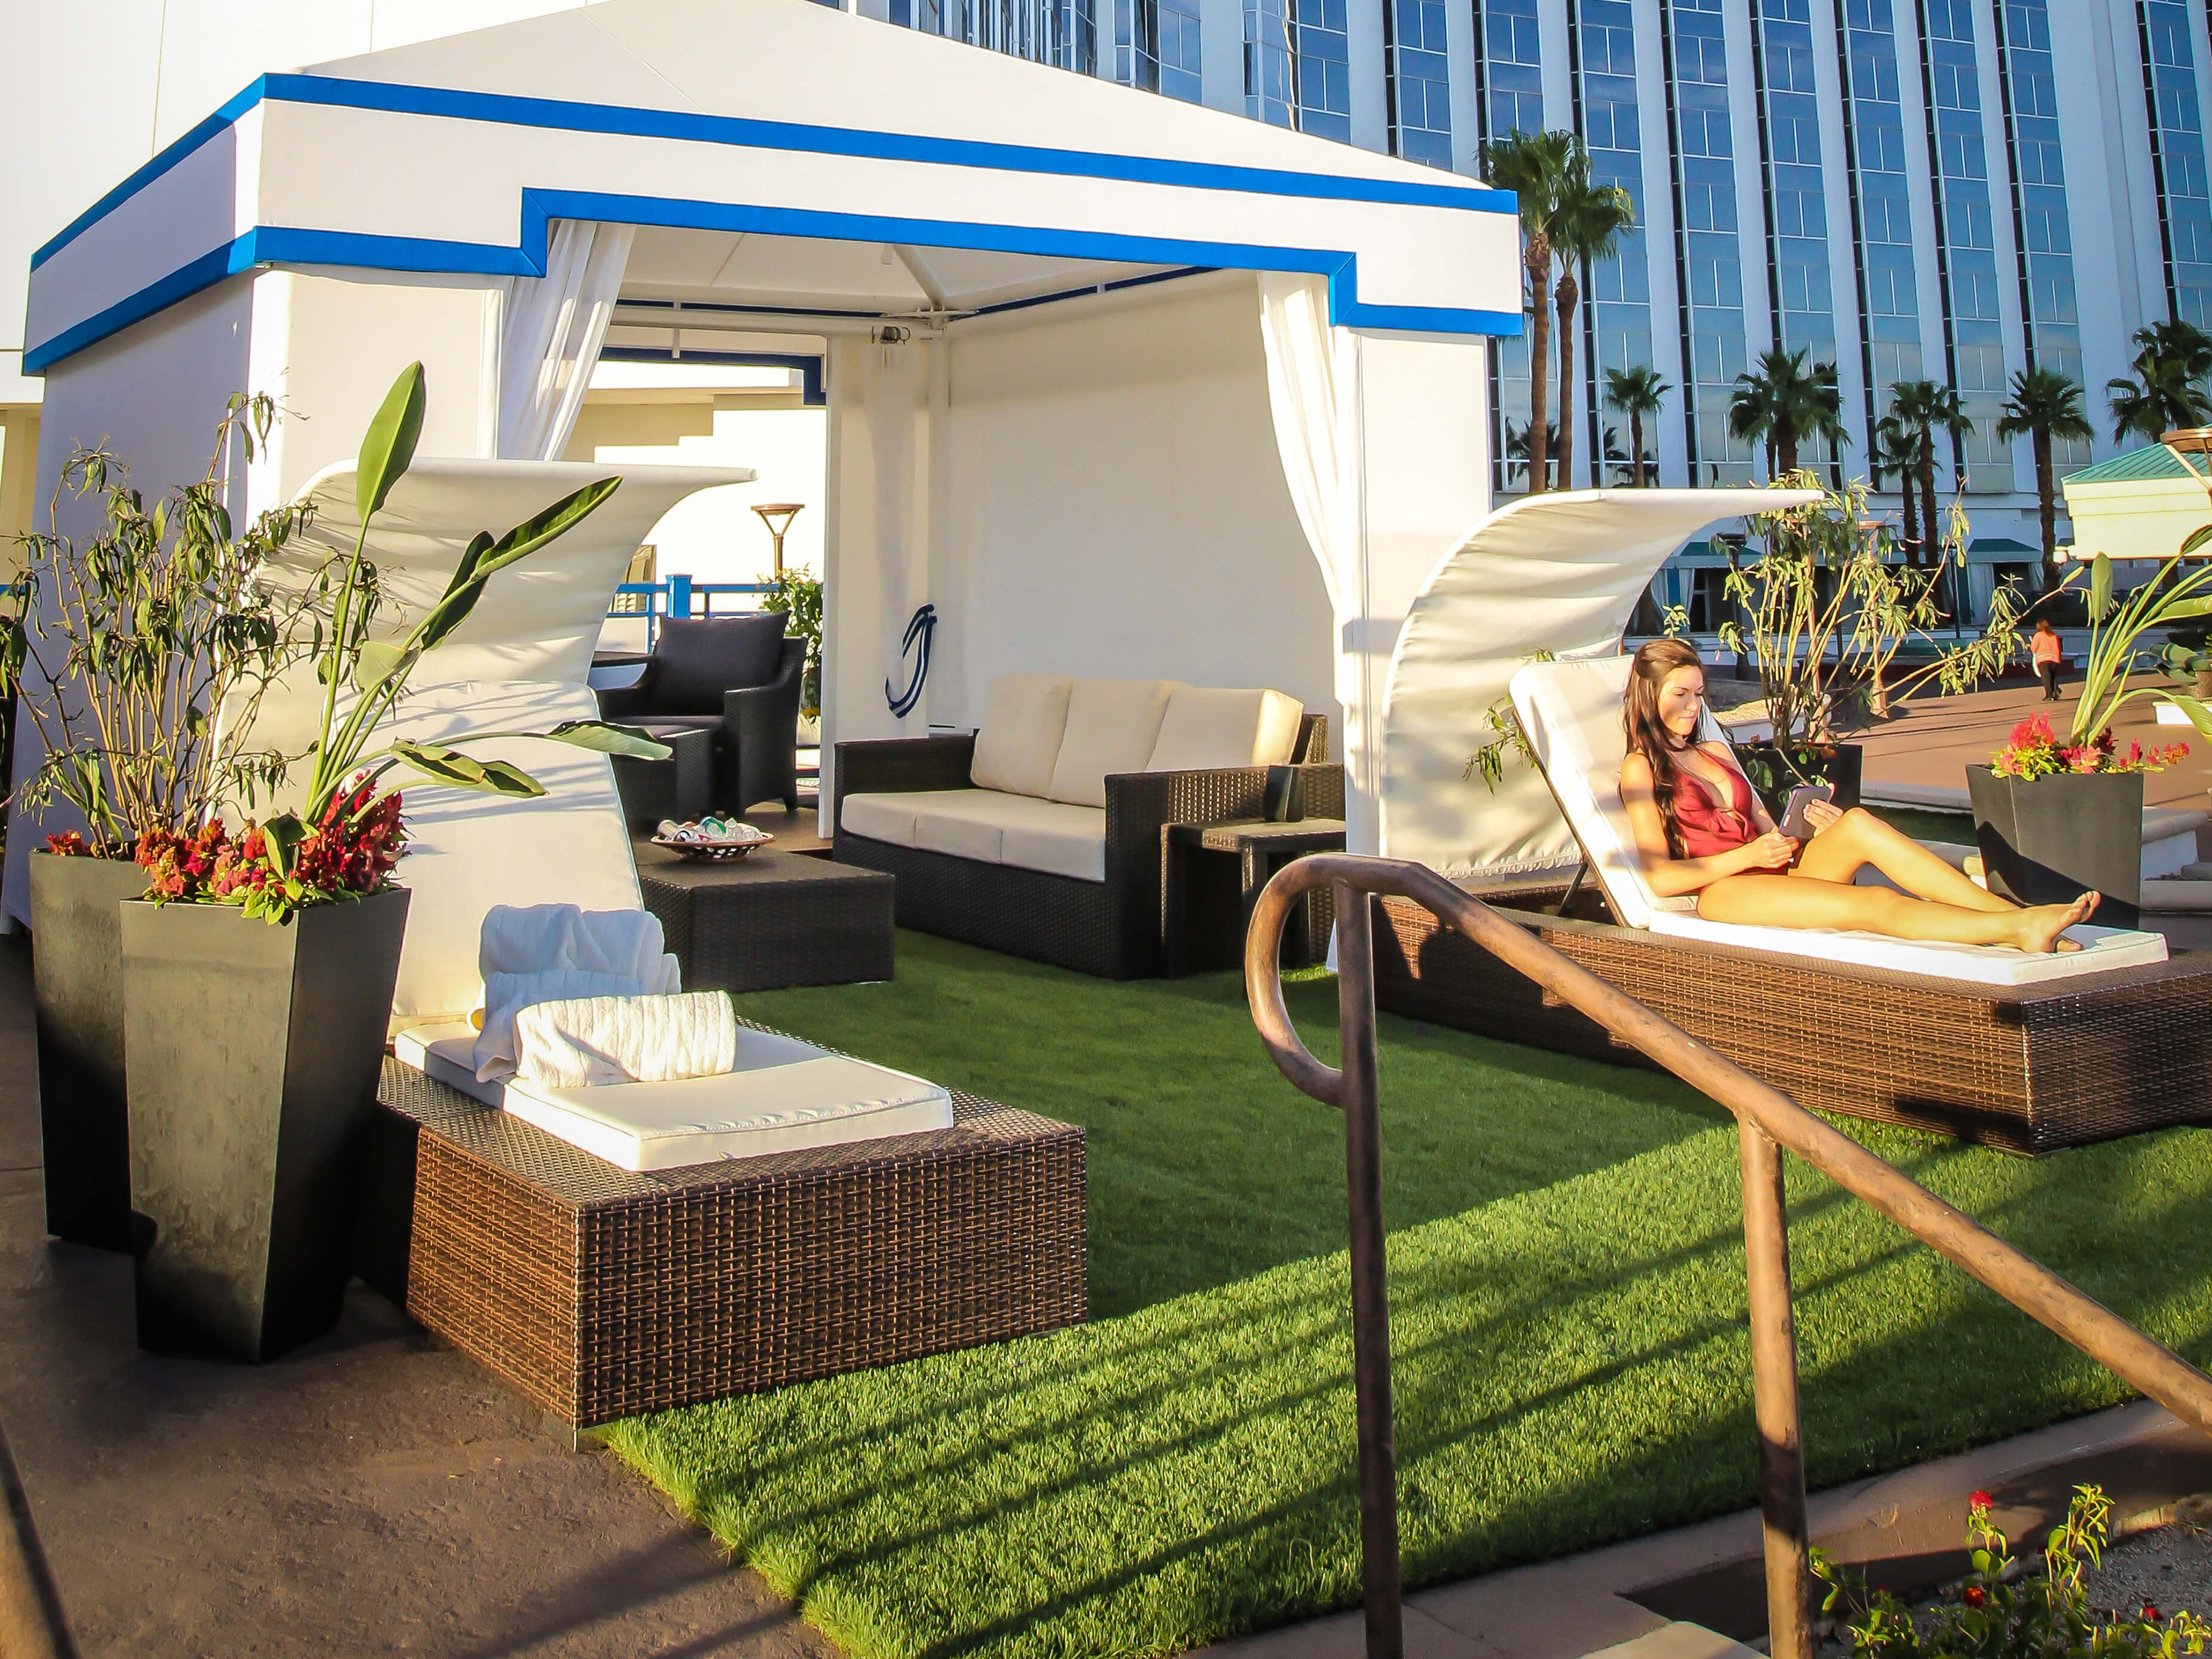 Pool Cabanas at our Las Vegas Hotel and Casino | Woman Headed to Pool Cabana